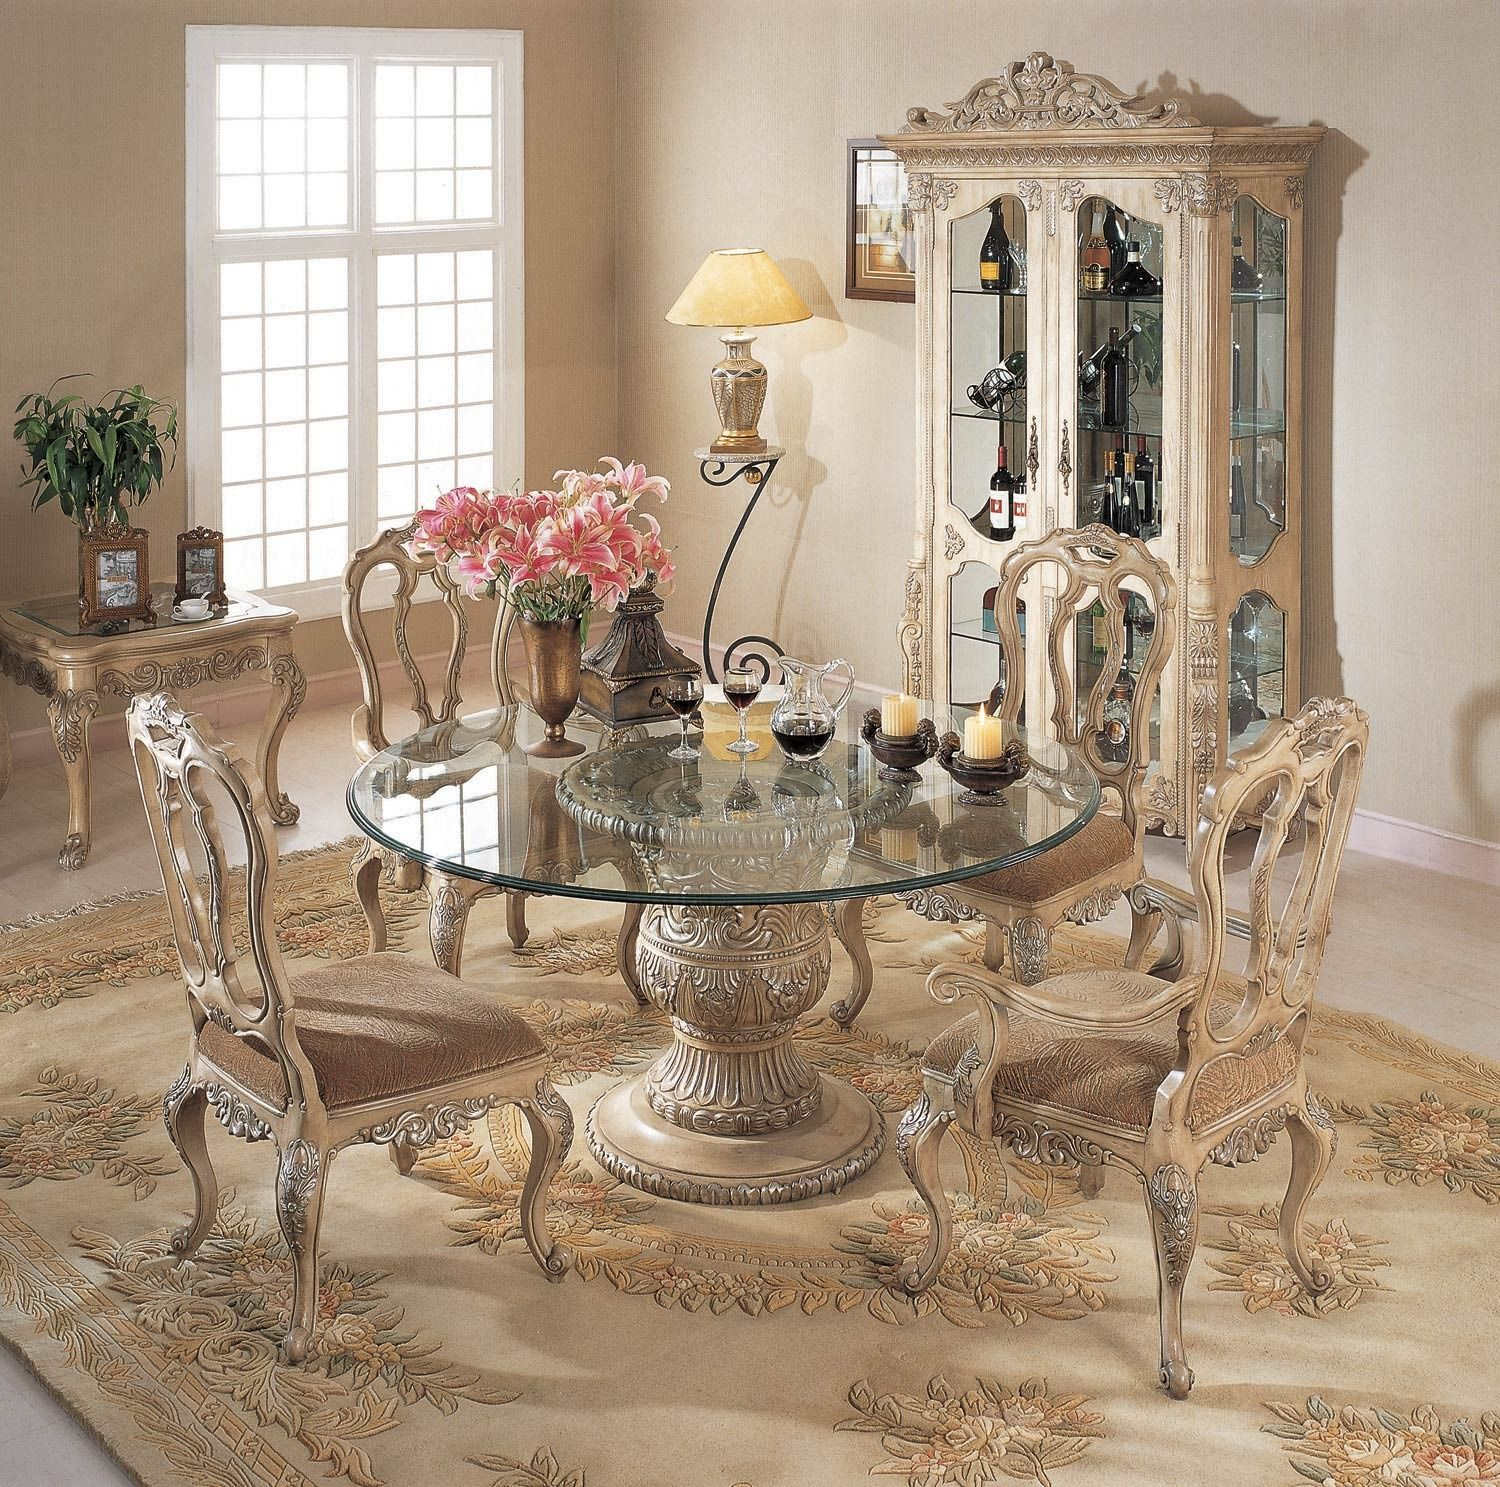 Antique Round Glass Dining Table Come With White Base In Carving To Classic Tufted Chair Cushion A Part Of Under Room